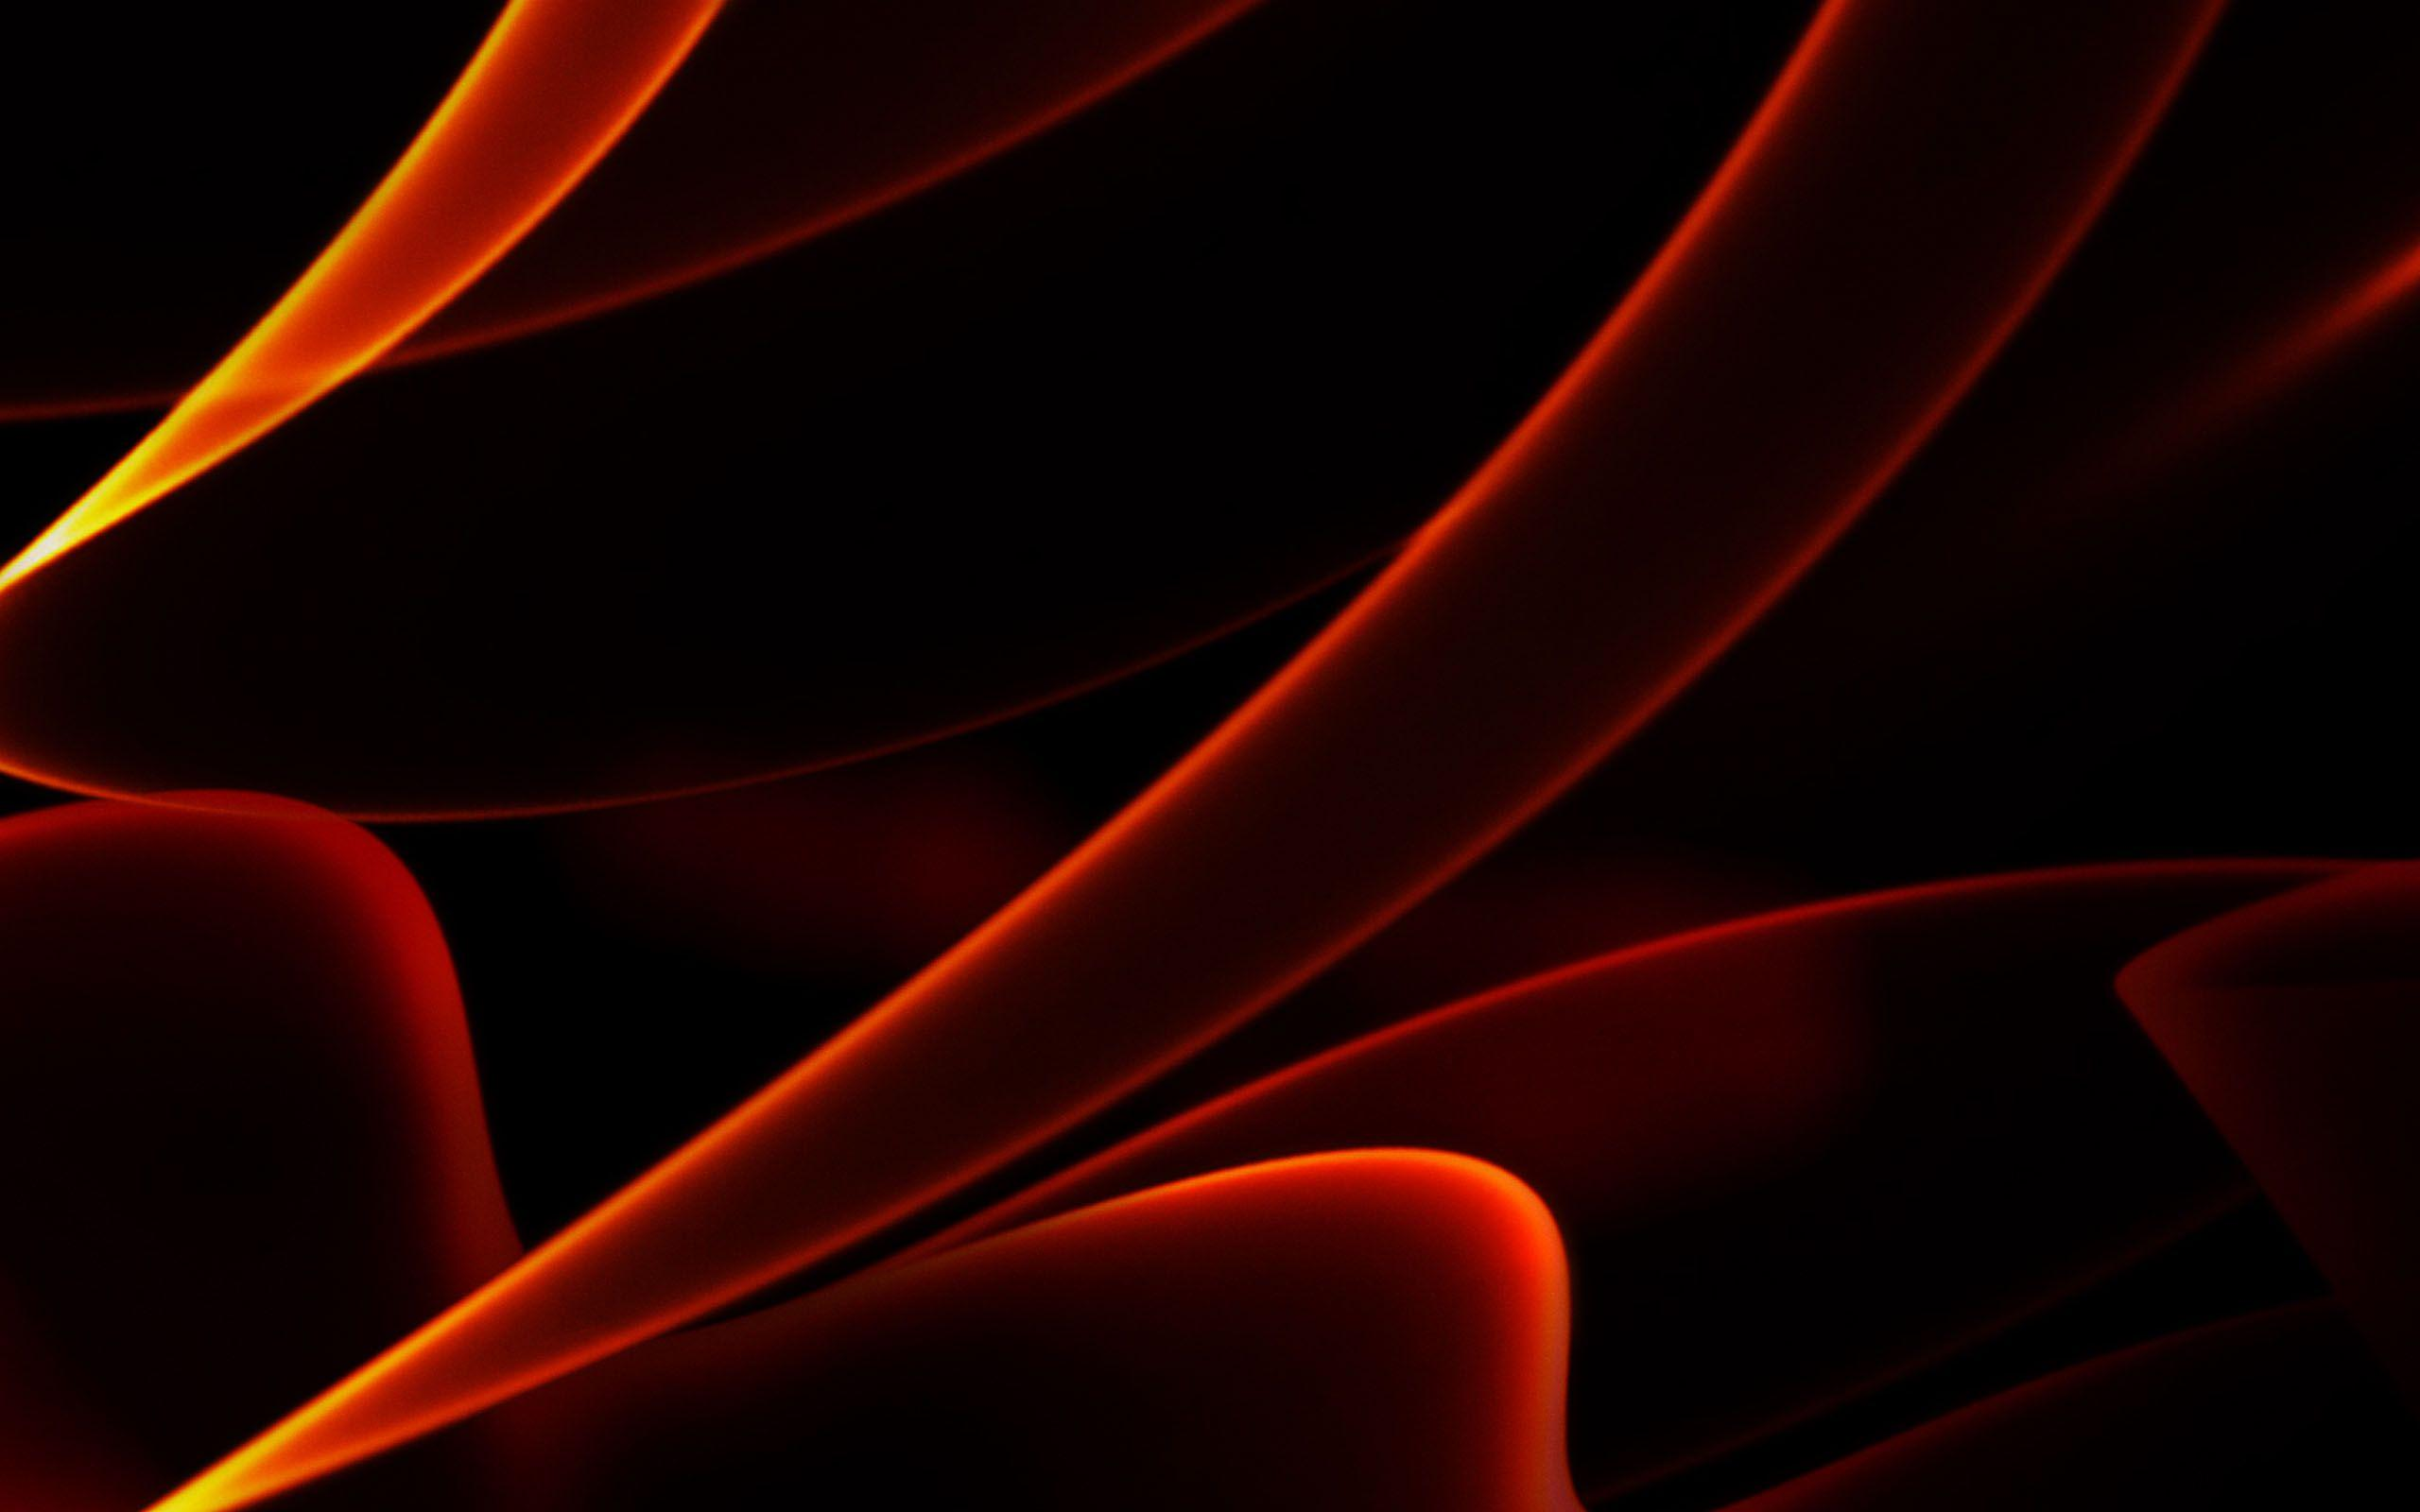 Dark Abstract Backgrounds 2560x1600